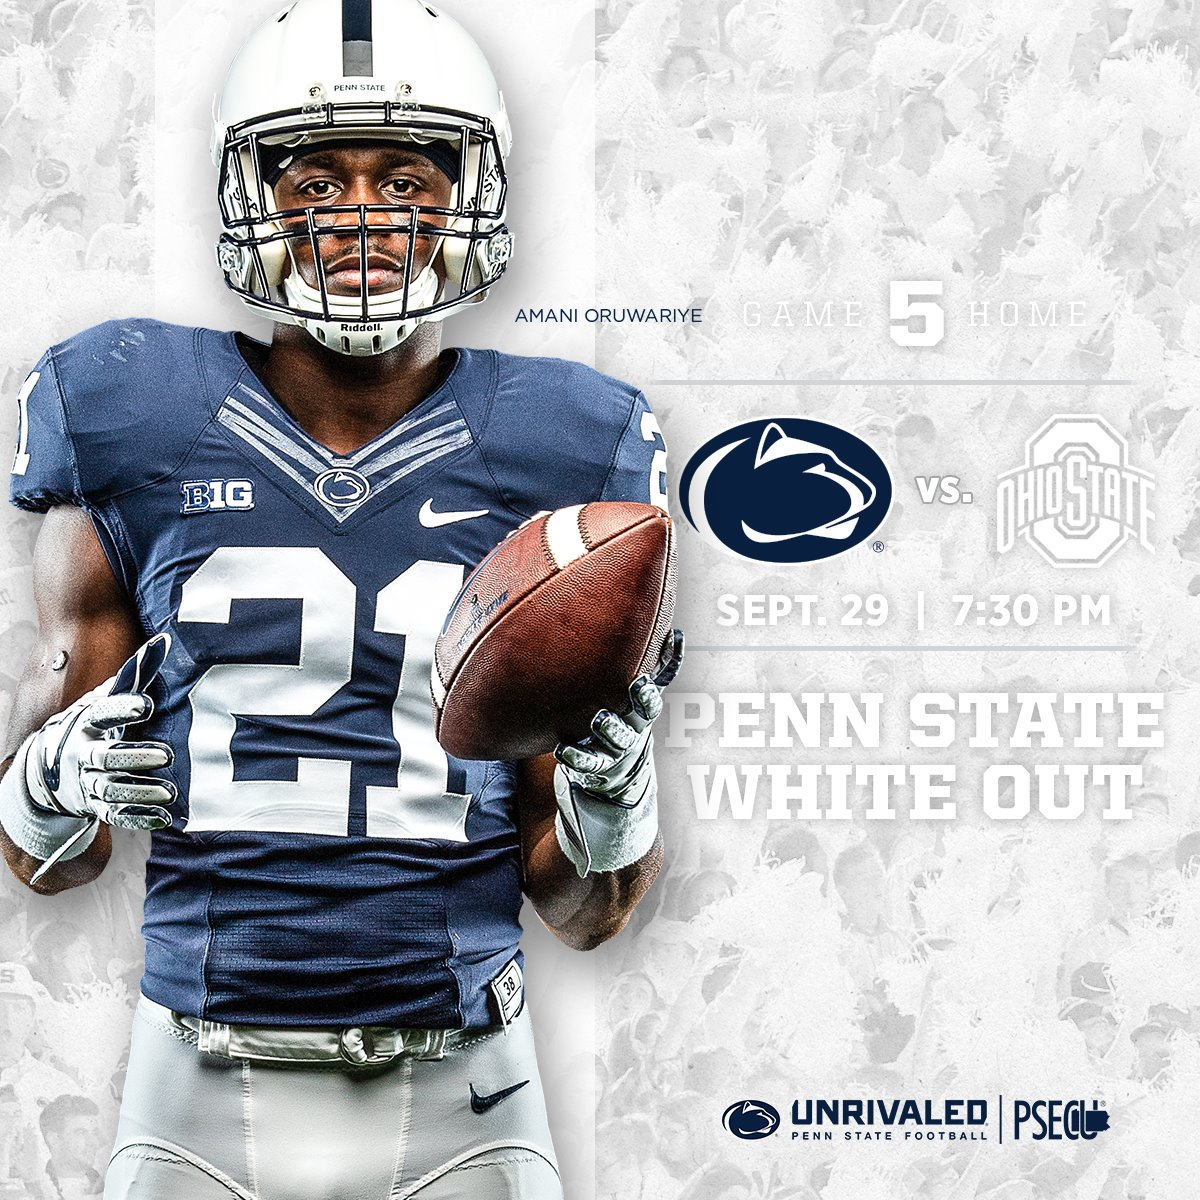 Psu im sports twitter giveaways